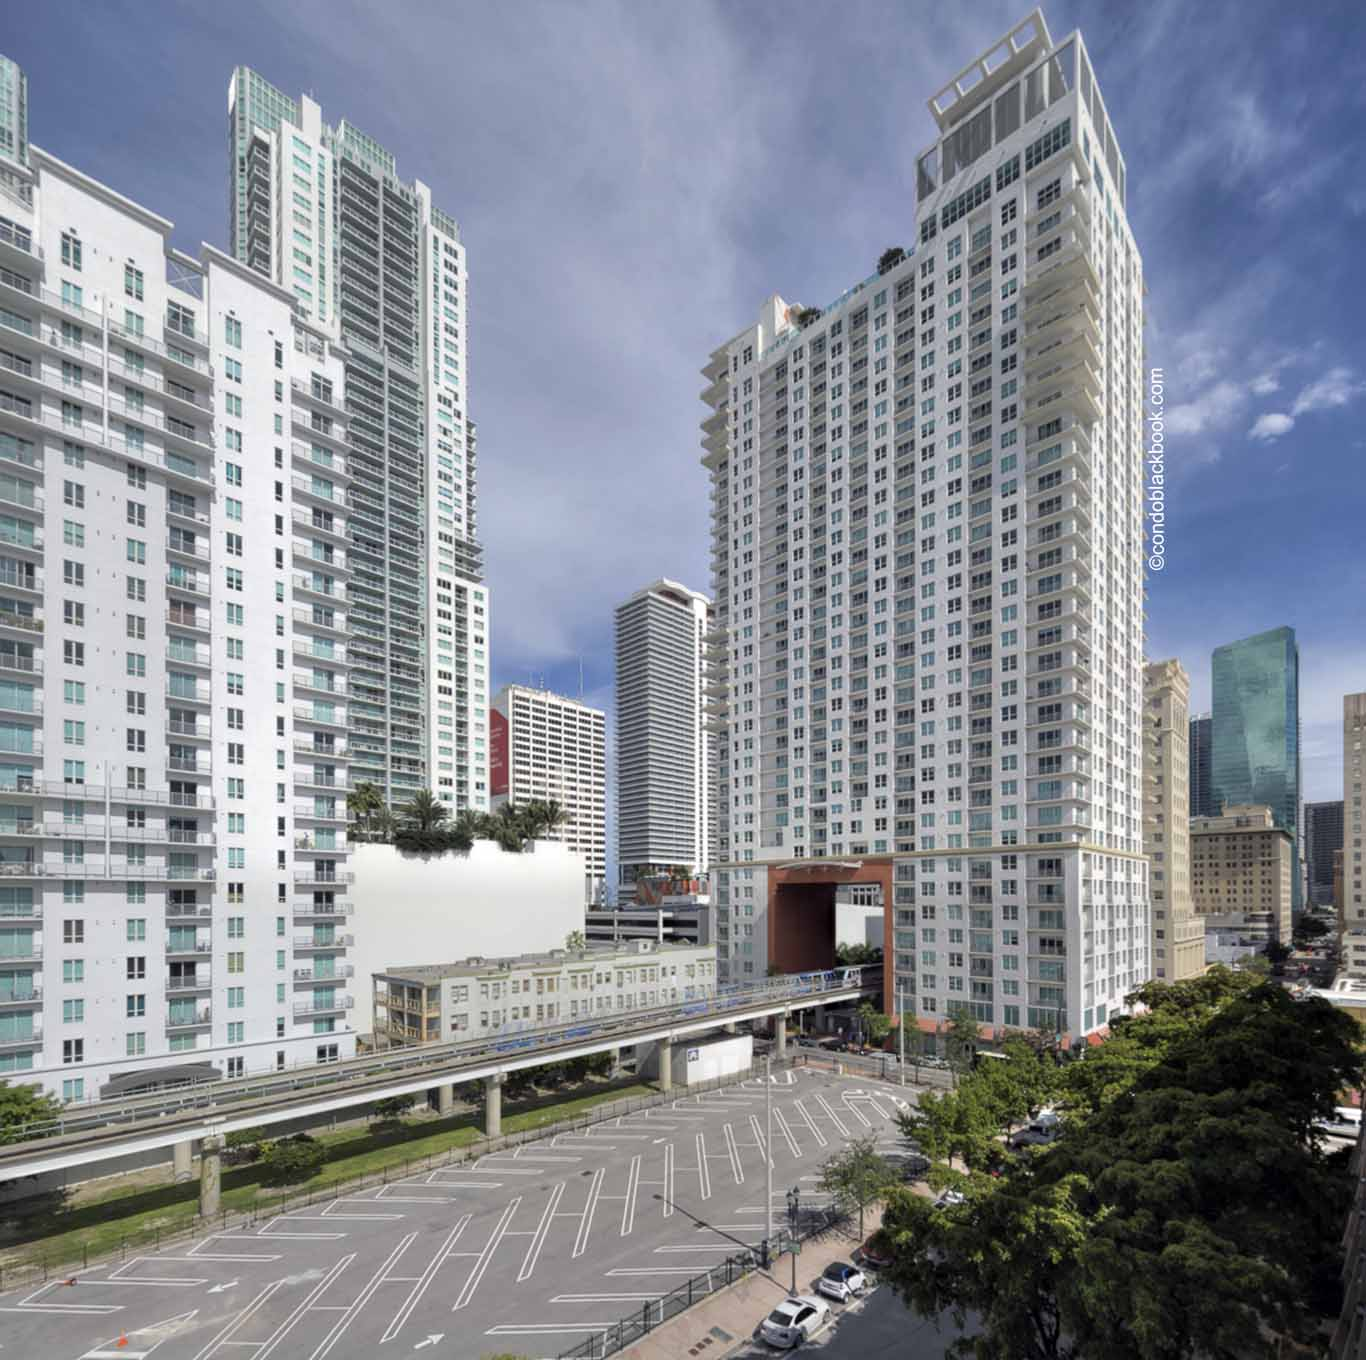 Rent House In Miami Beach: Search Loft Downtown II Condos For Sale And Rent In